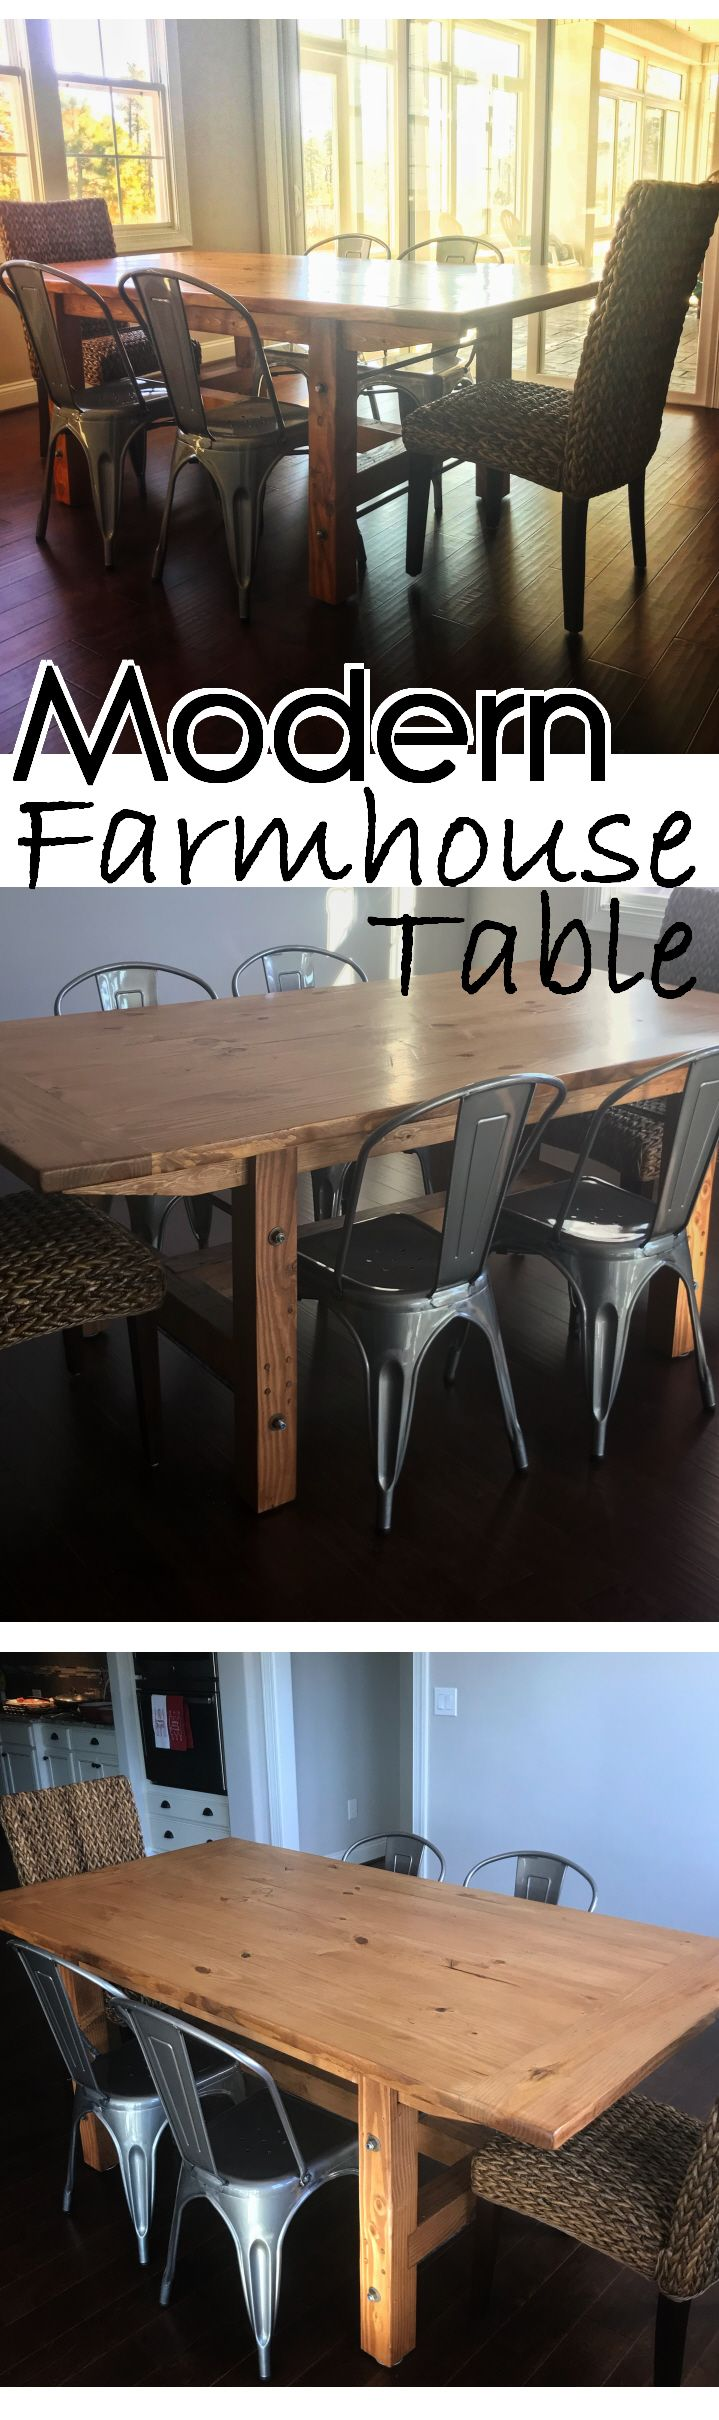 Farmhouse tables have become a decorating staple in today's homes.  That does not mean you have to own a cookie-cutter design.   This farmhouse table was designed to have modern accents to match the customer's metal chairs. Each leg features a metal support bar with exposed bolts and fasteners.